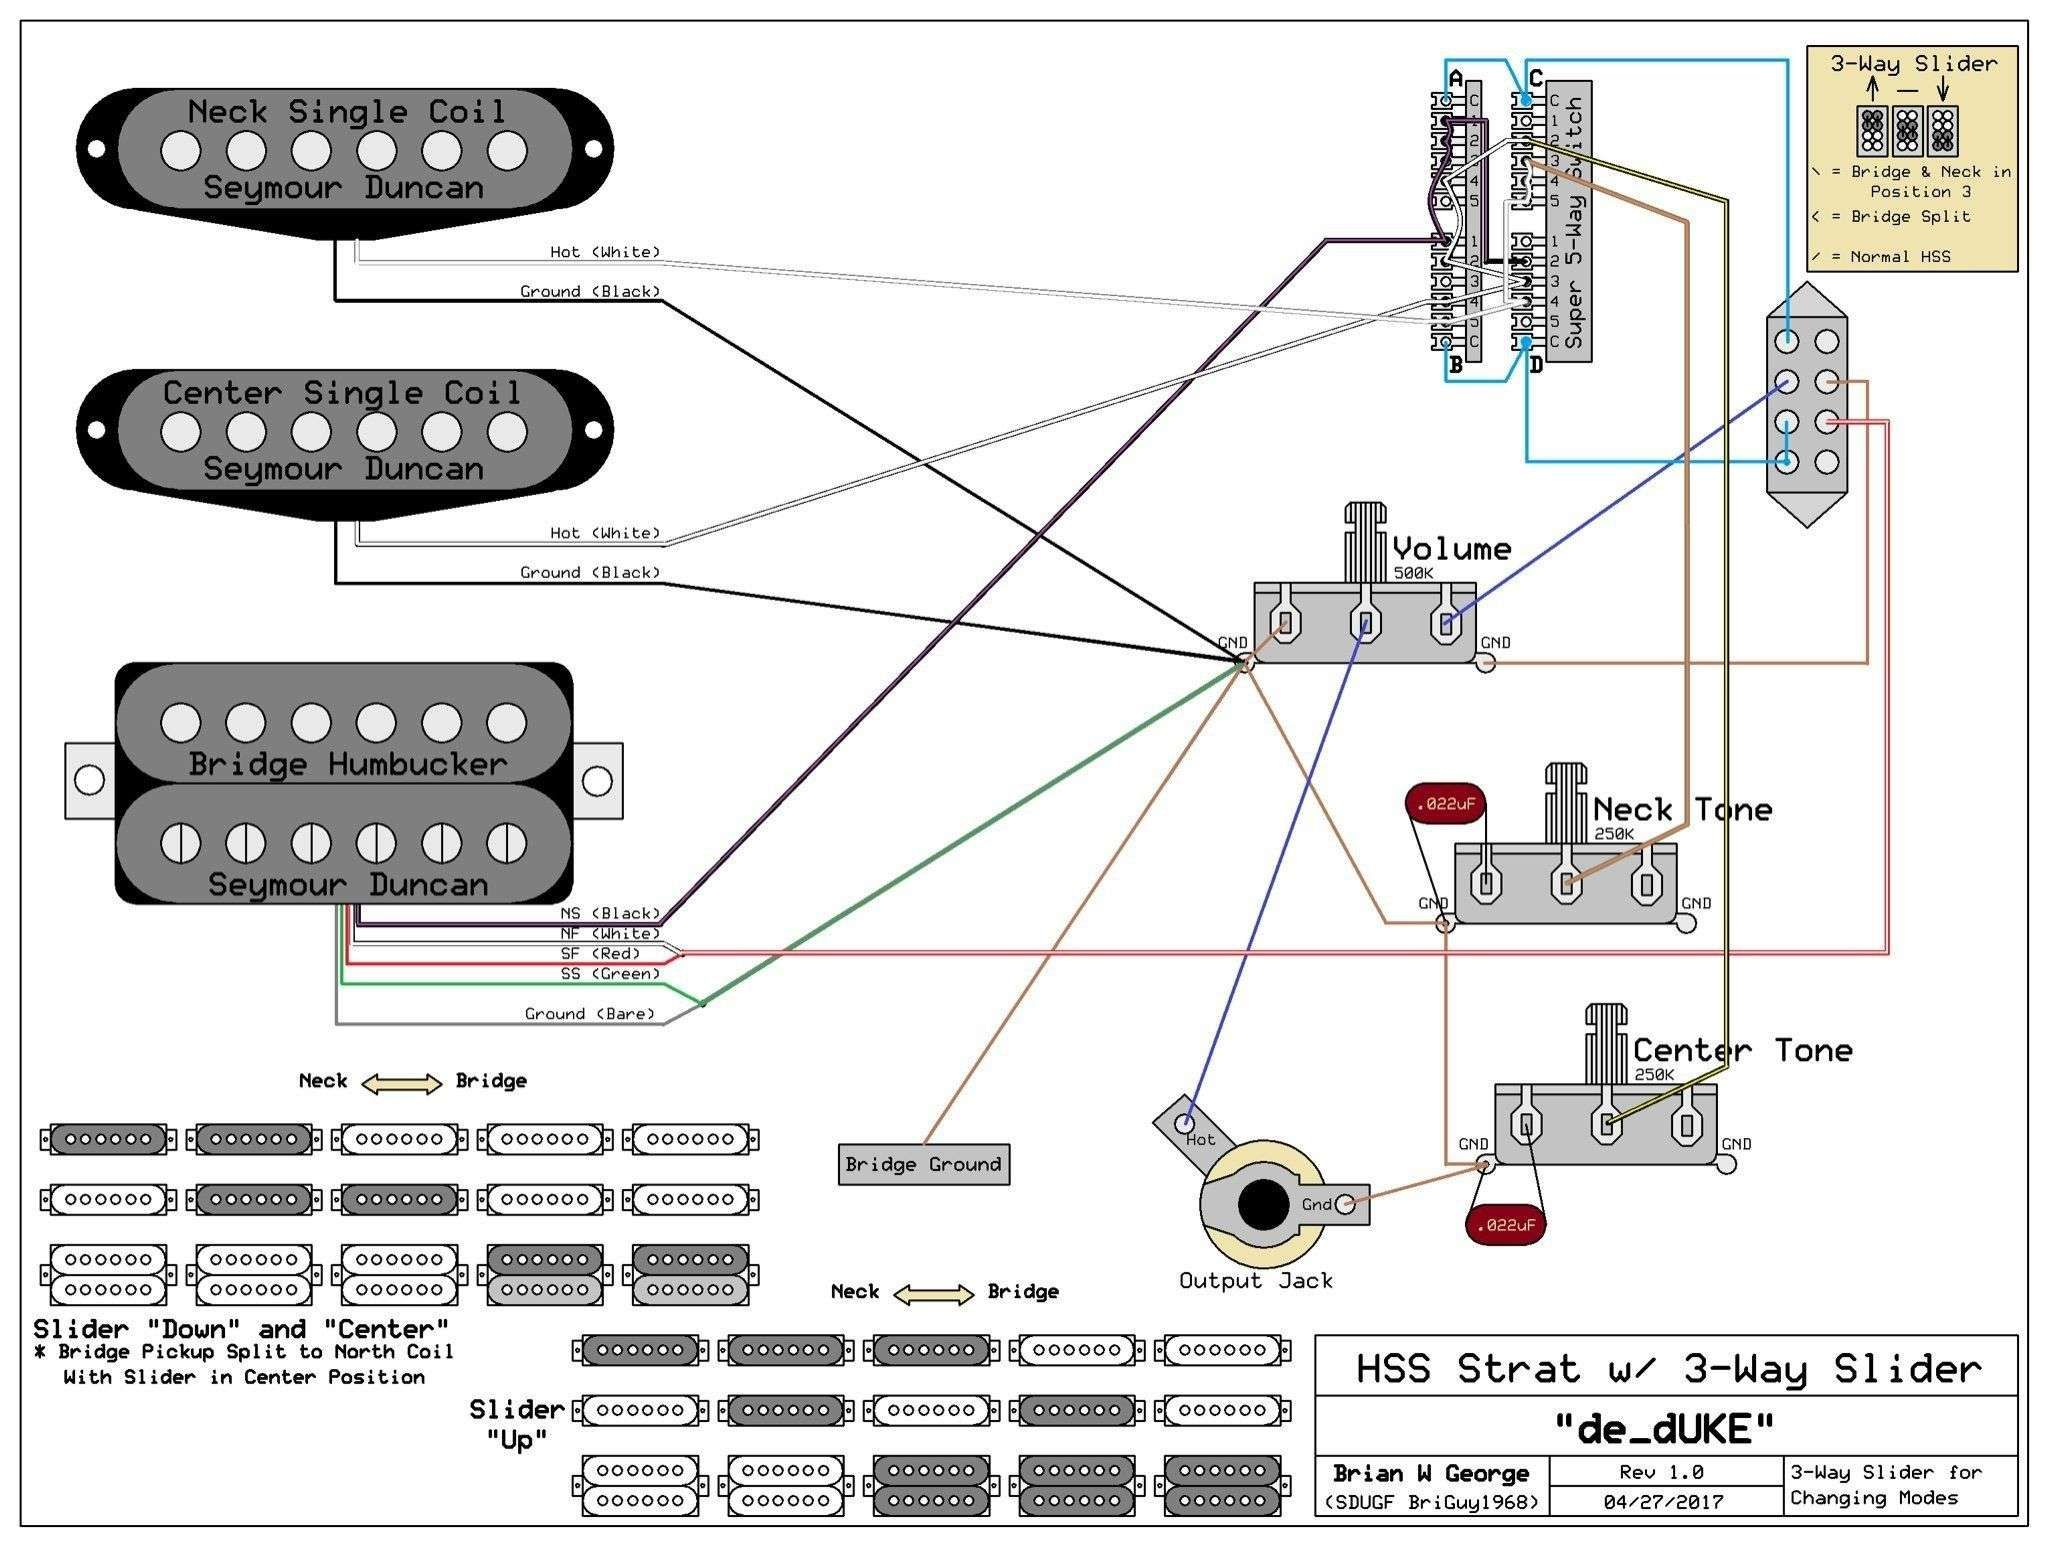 wiring diagram 3 way switch elegant wiring diagrams for strat fresh wiring diagram guitar 3 way switch [ 2048 x 1547 Pixel ]